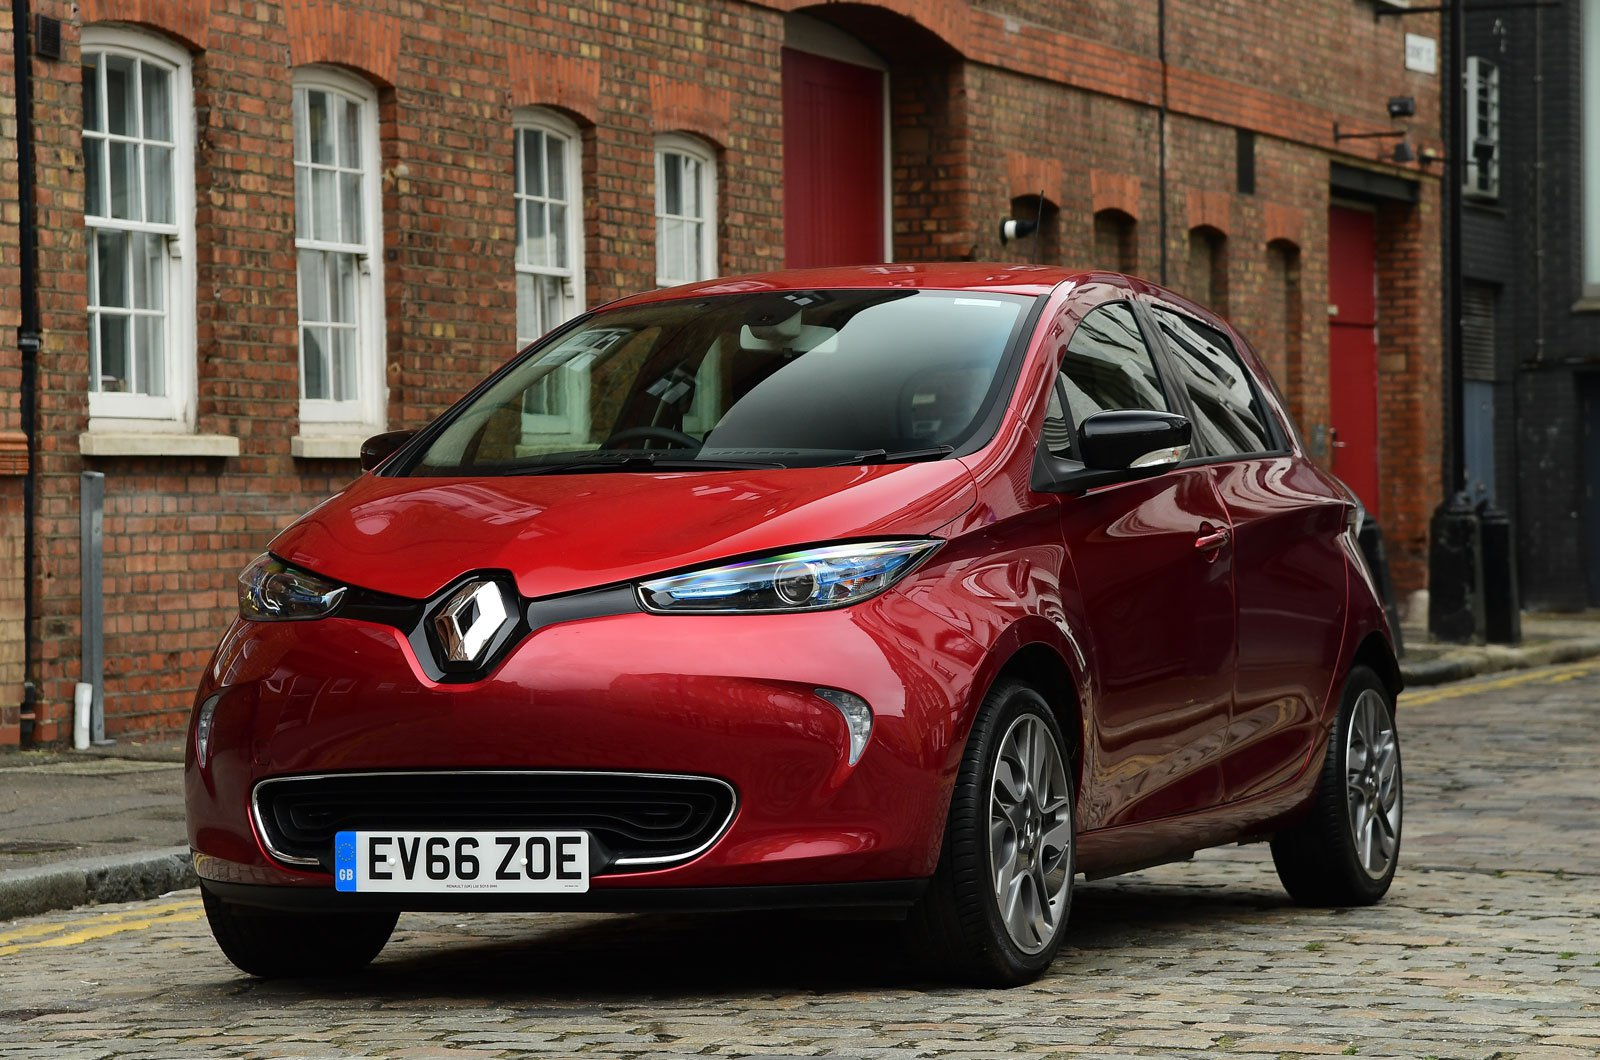 The Zoe S Main Strength Is That It Feels Like A Conventional Stylish Nippy Small Car And Just Hens To Cost Pennies Run Electric Motor Has